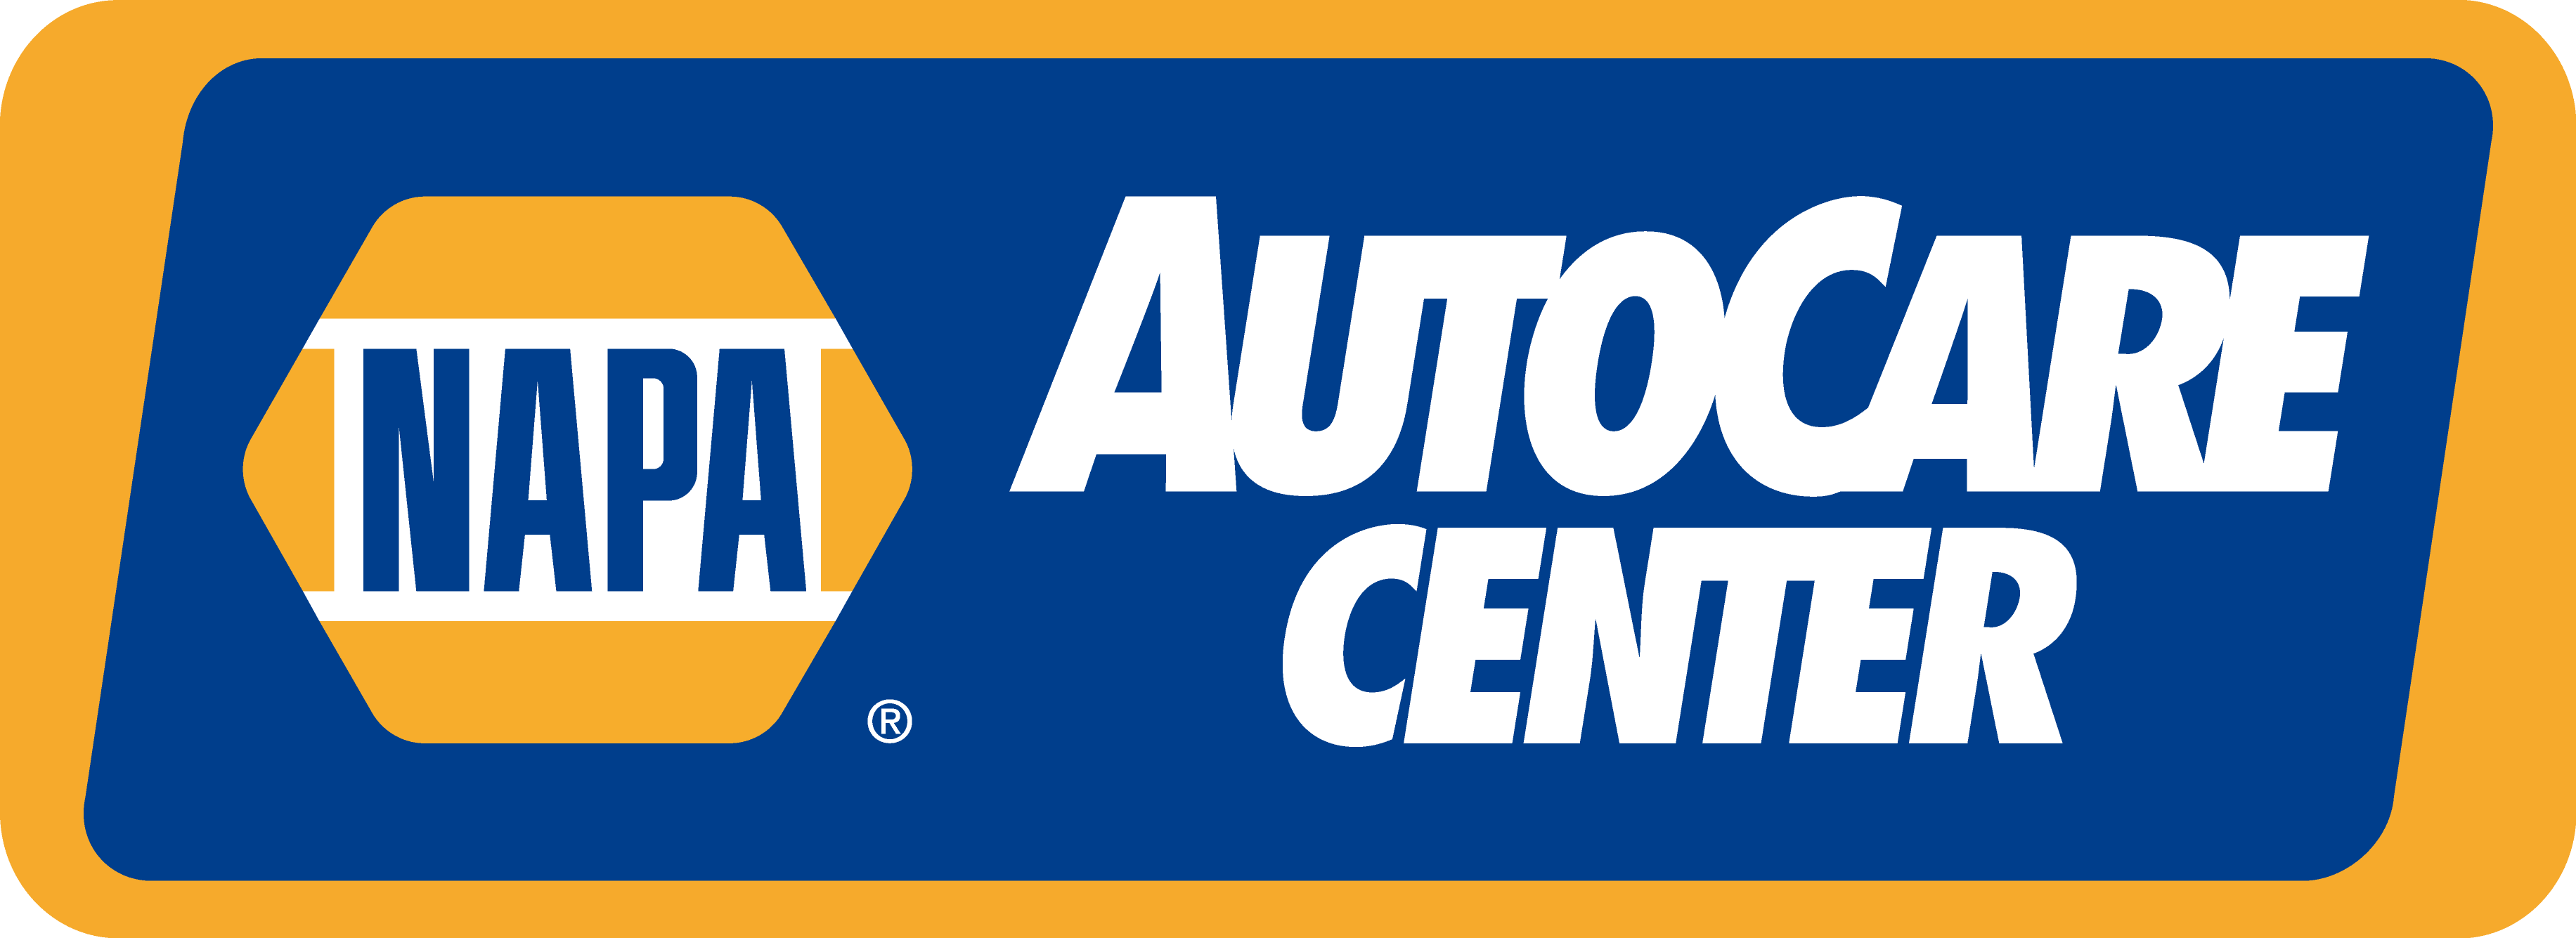 NAPA Auto Care Center, Bari's Automotive, Rancho Cordova, CA, 95742